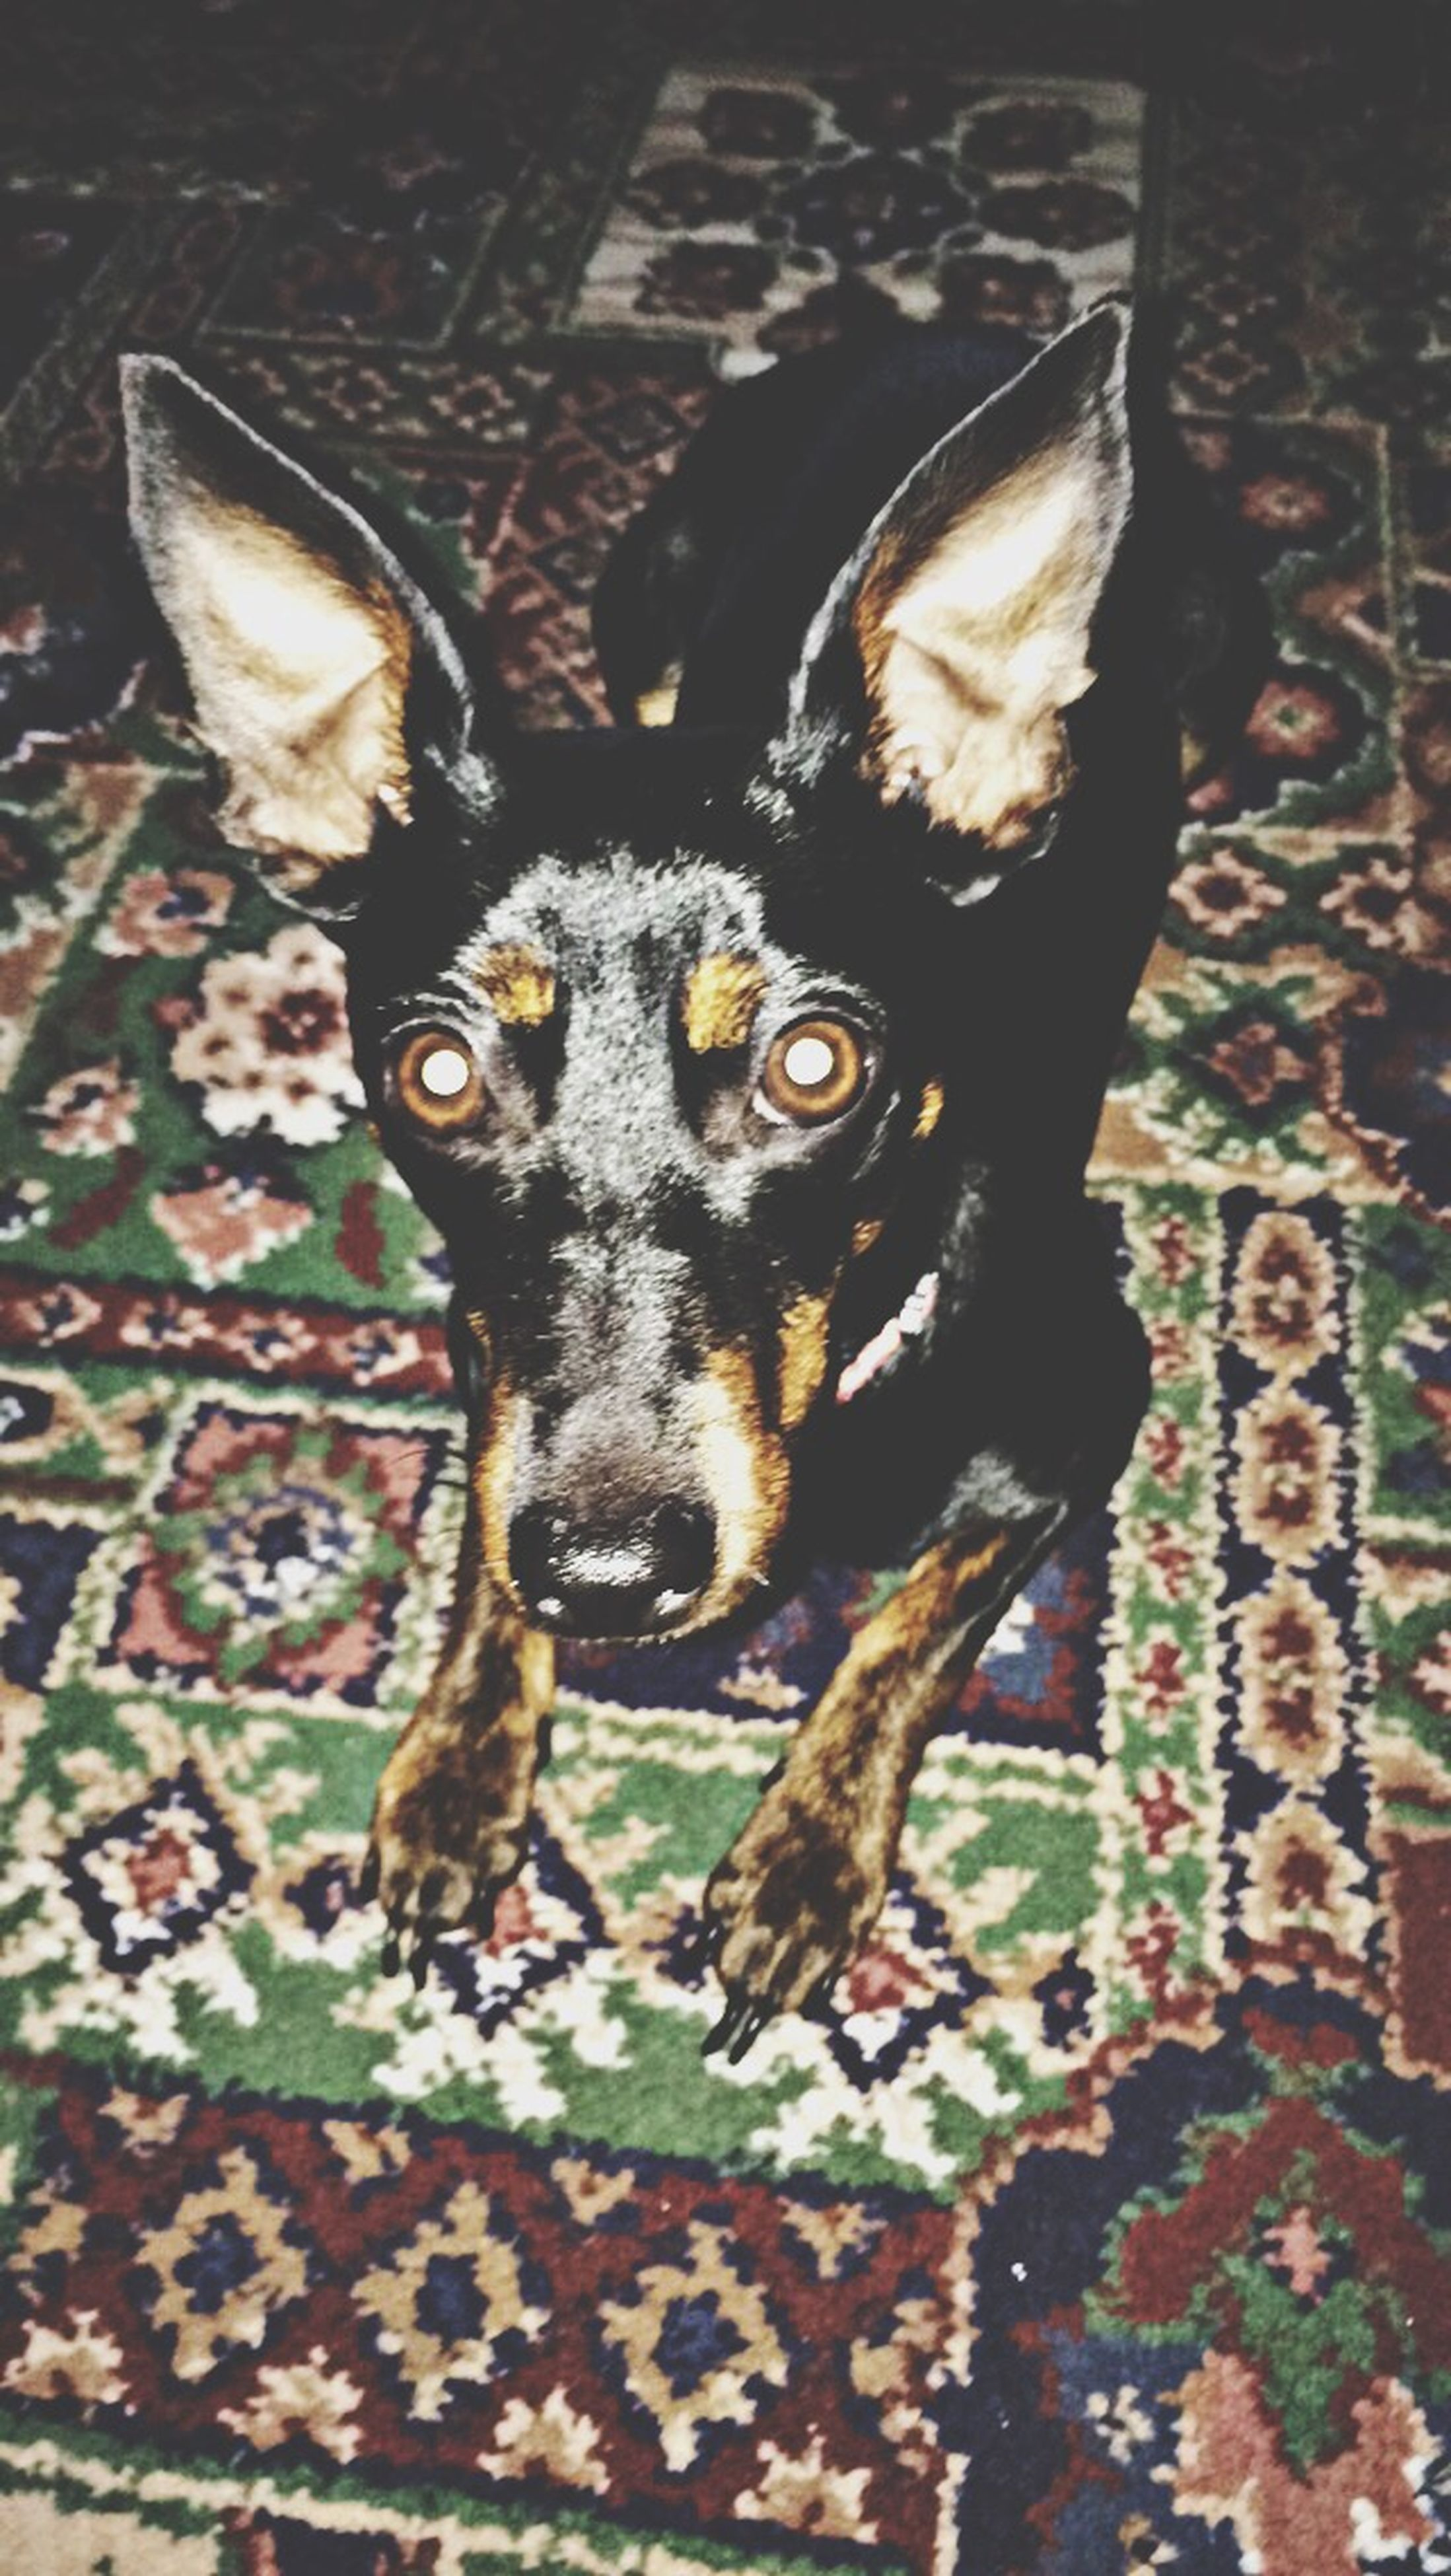 animal themes, one animal, portrait, looking at camera, mammal, pets, domestic animals, indoors, close-up, animal head, dog, black color, high angle view, no people, focus on foreground, animal body part, animal eye, front view, wildlife, young animal